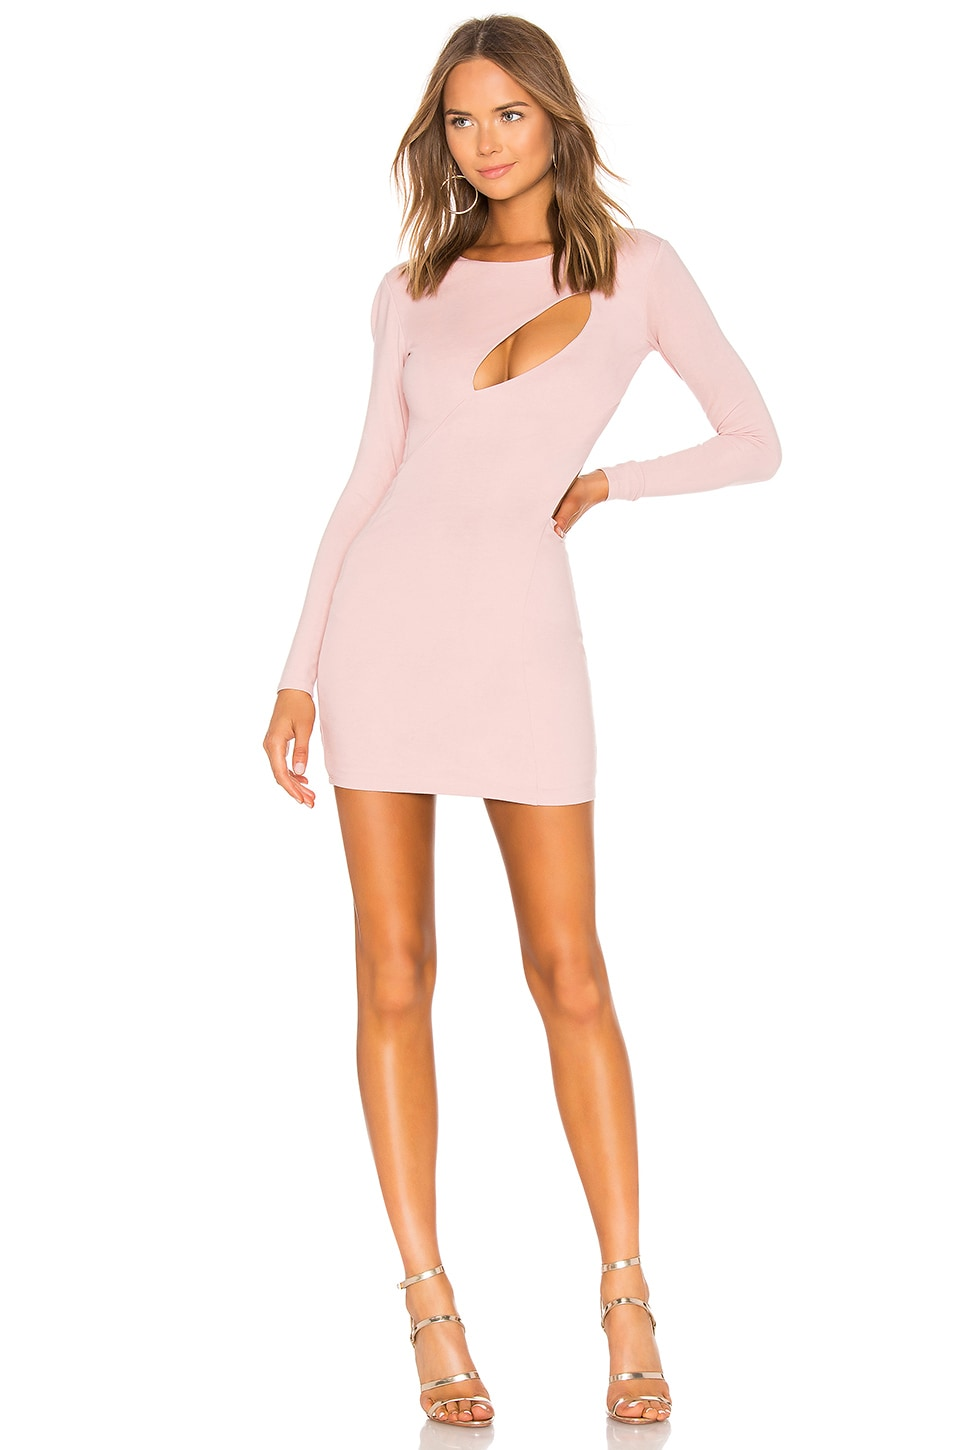 h:ours Taylor Cut Out Dress in Coco Rose